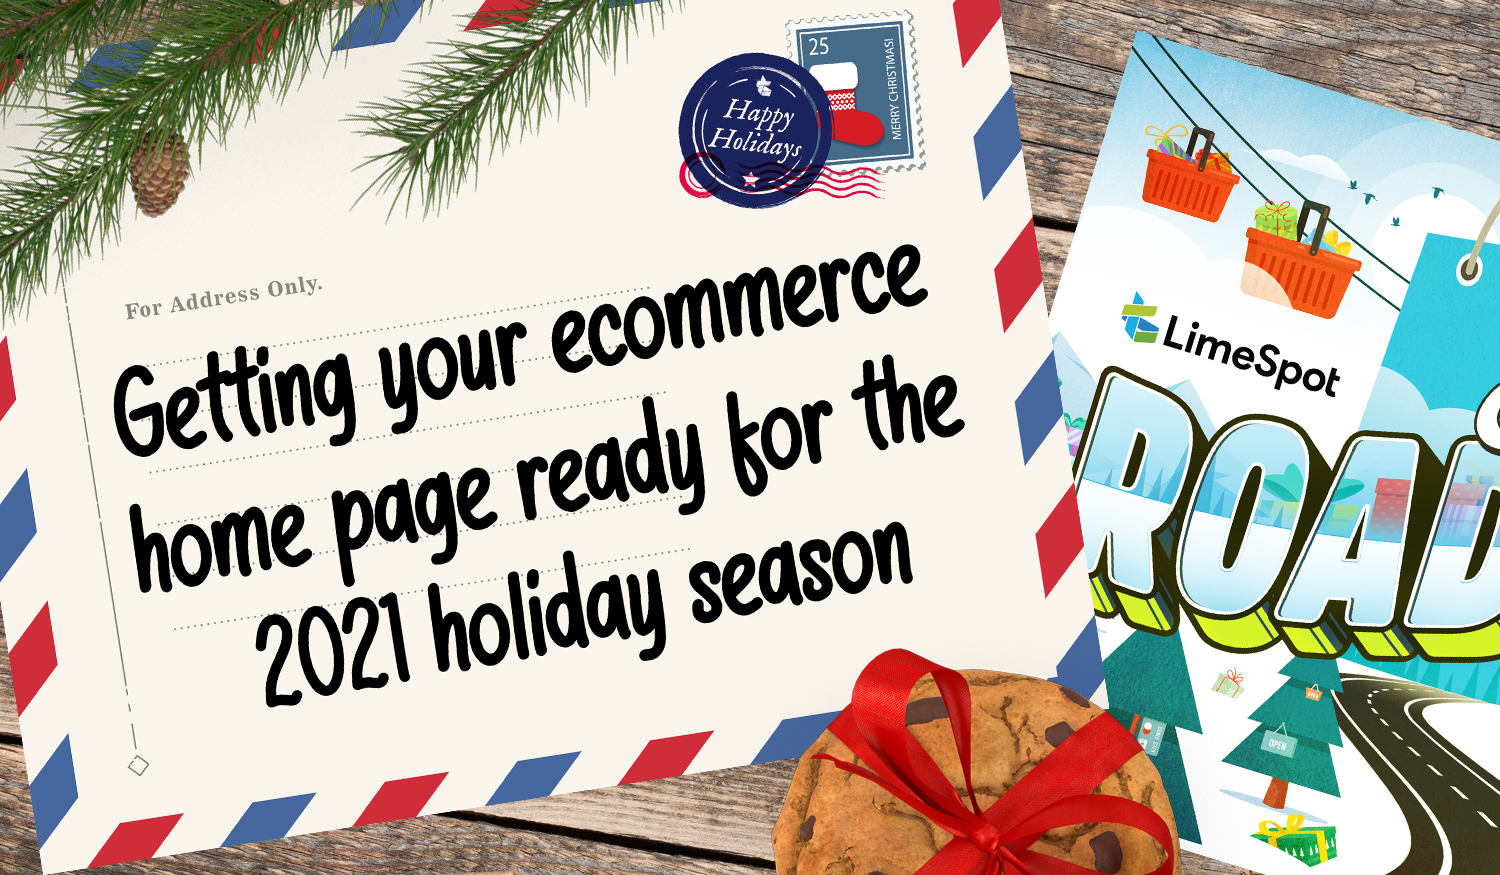 Getting your ecommerce home page ready for the 2021 holiday season 1500x875px